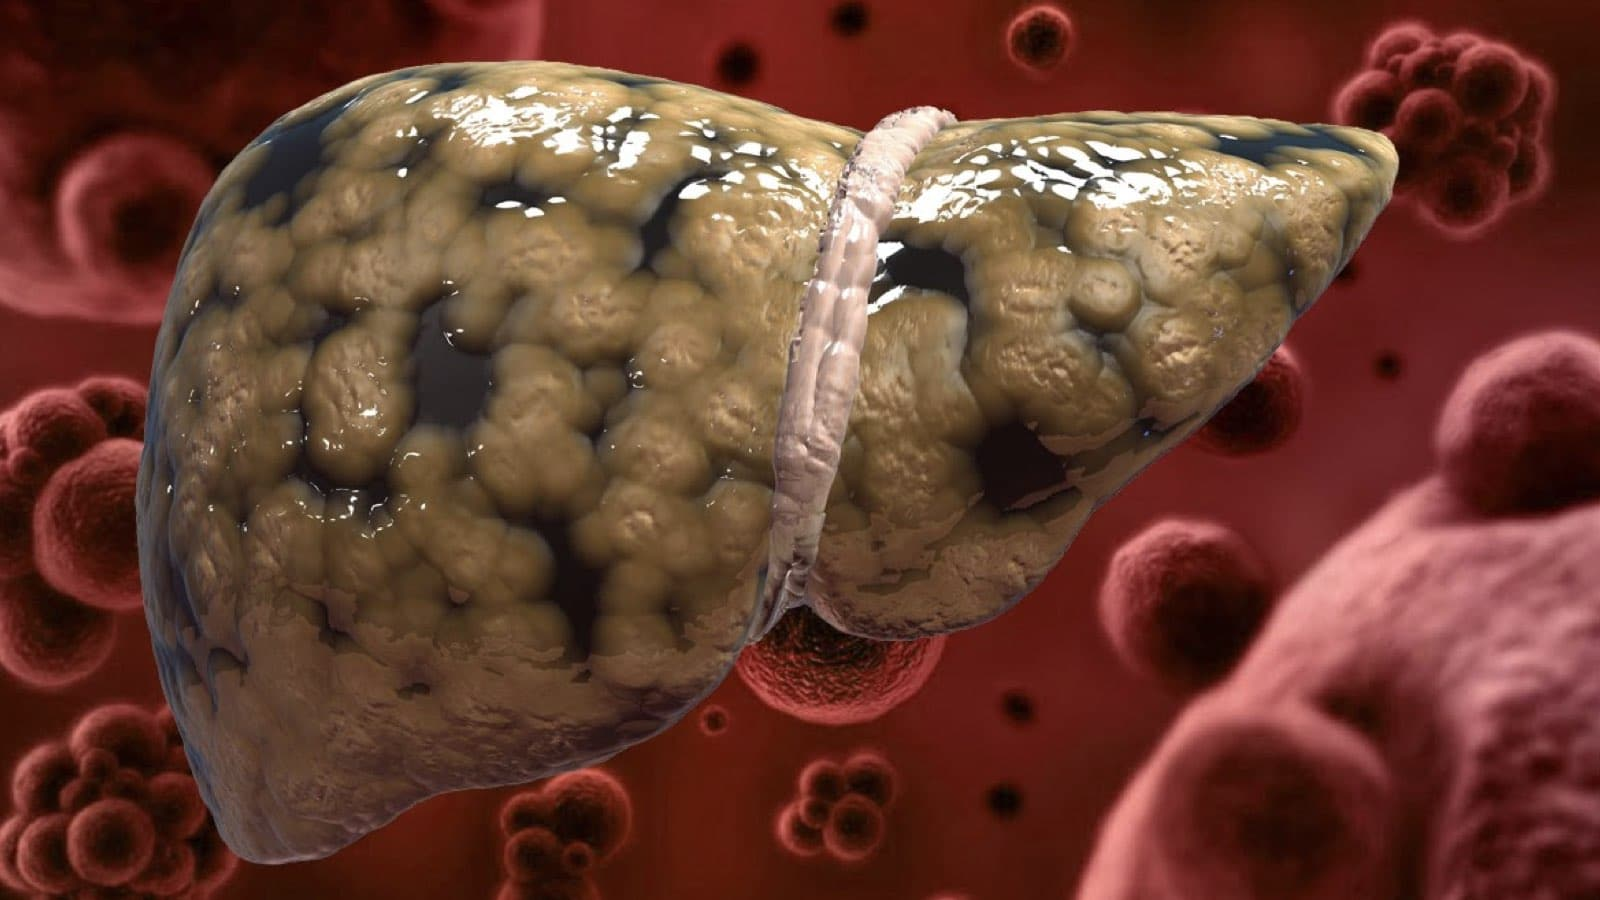 What Bad Habits Will Potentially Cause Your Liver To Suffer Heavily?